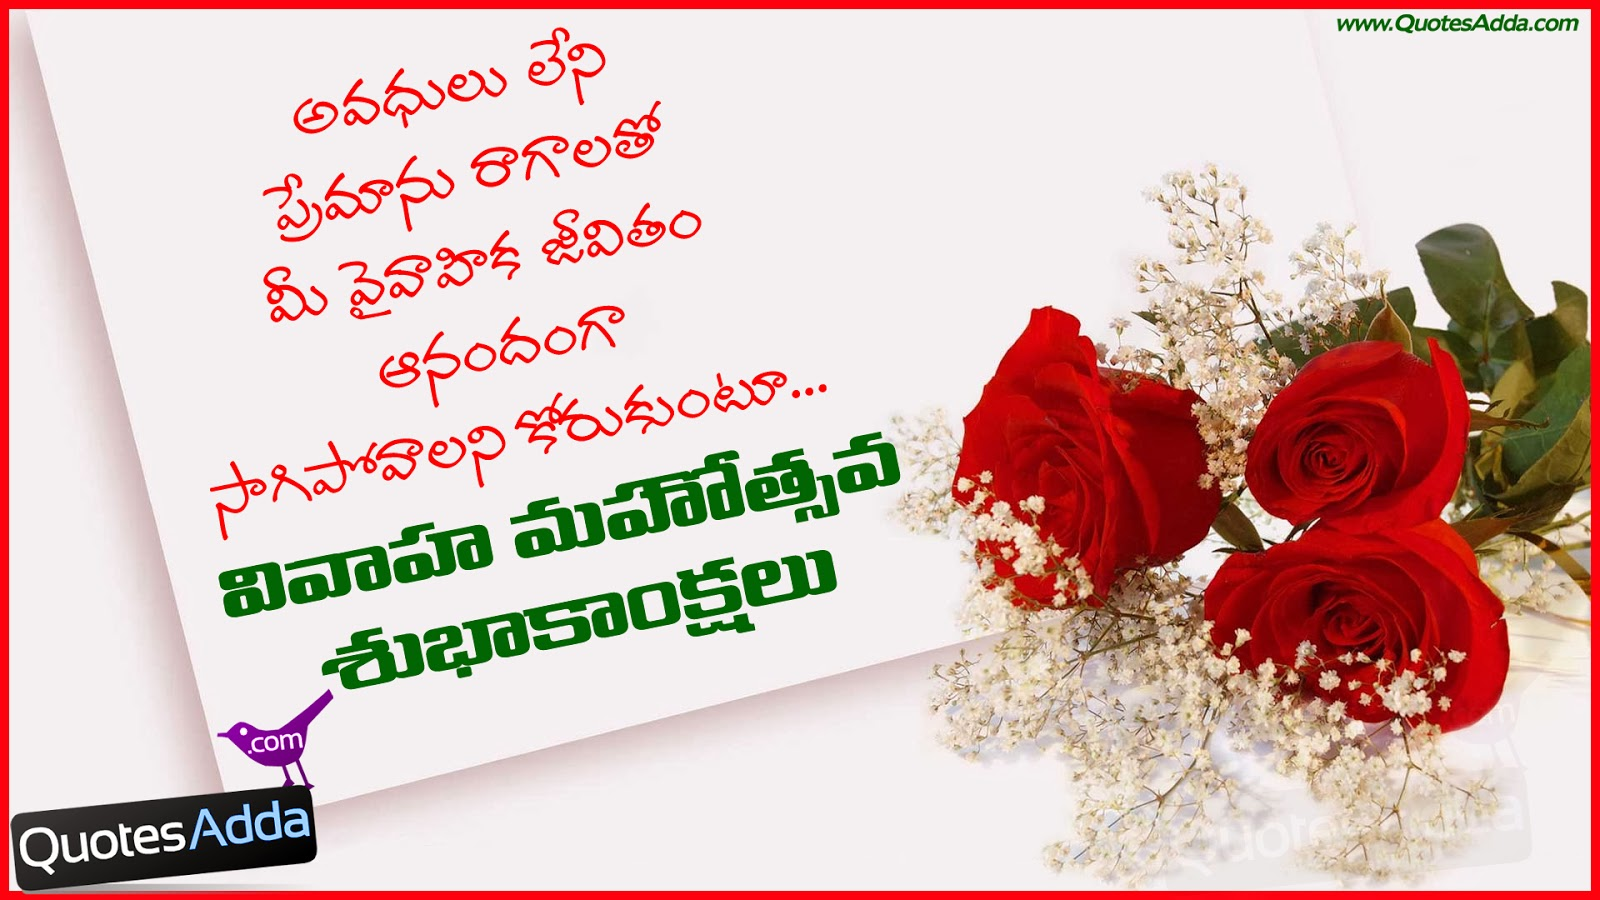 Marriage wishes in Tamil language